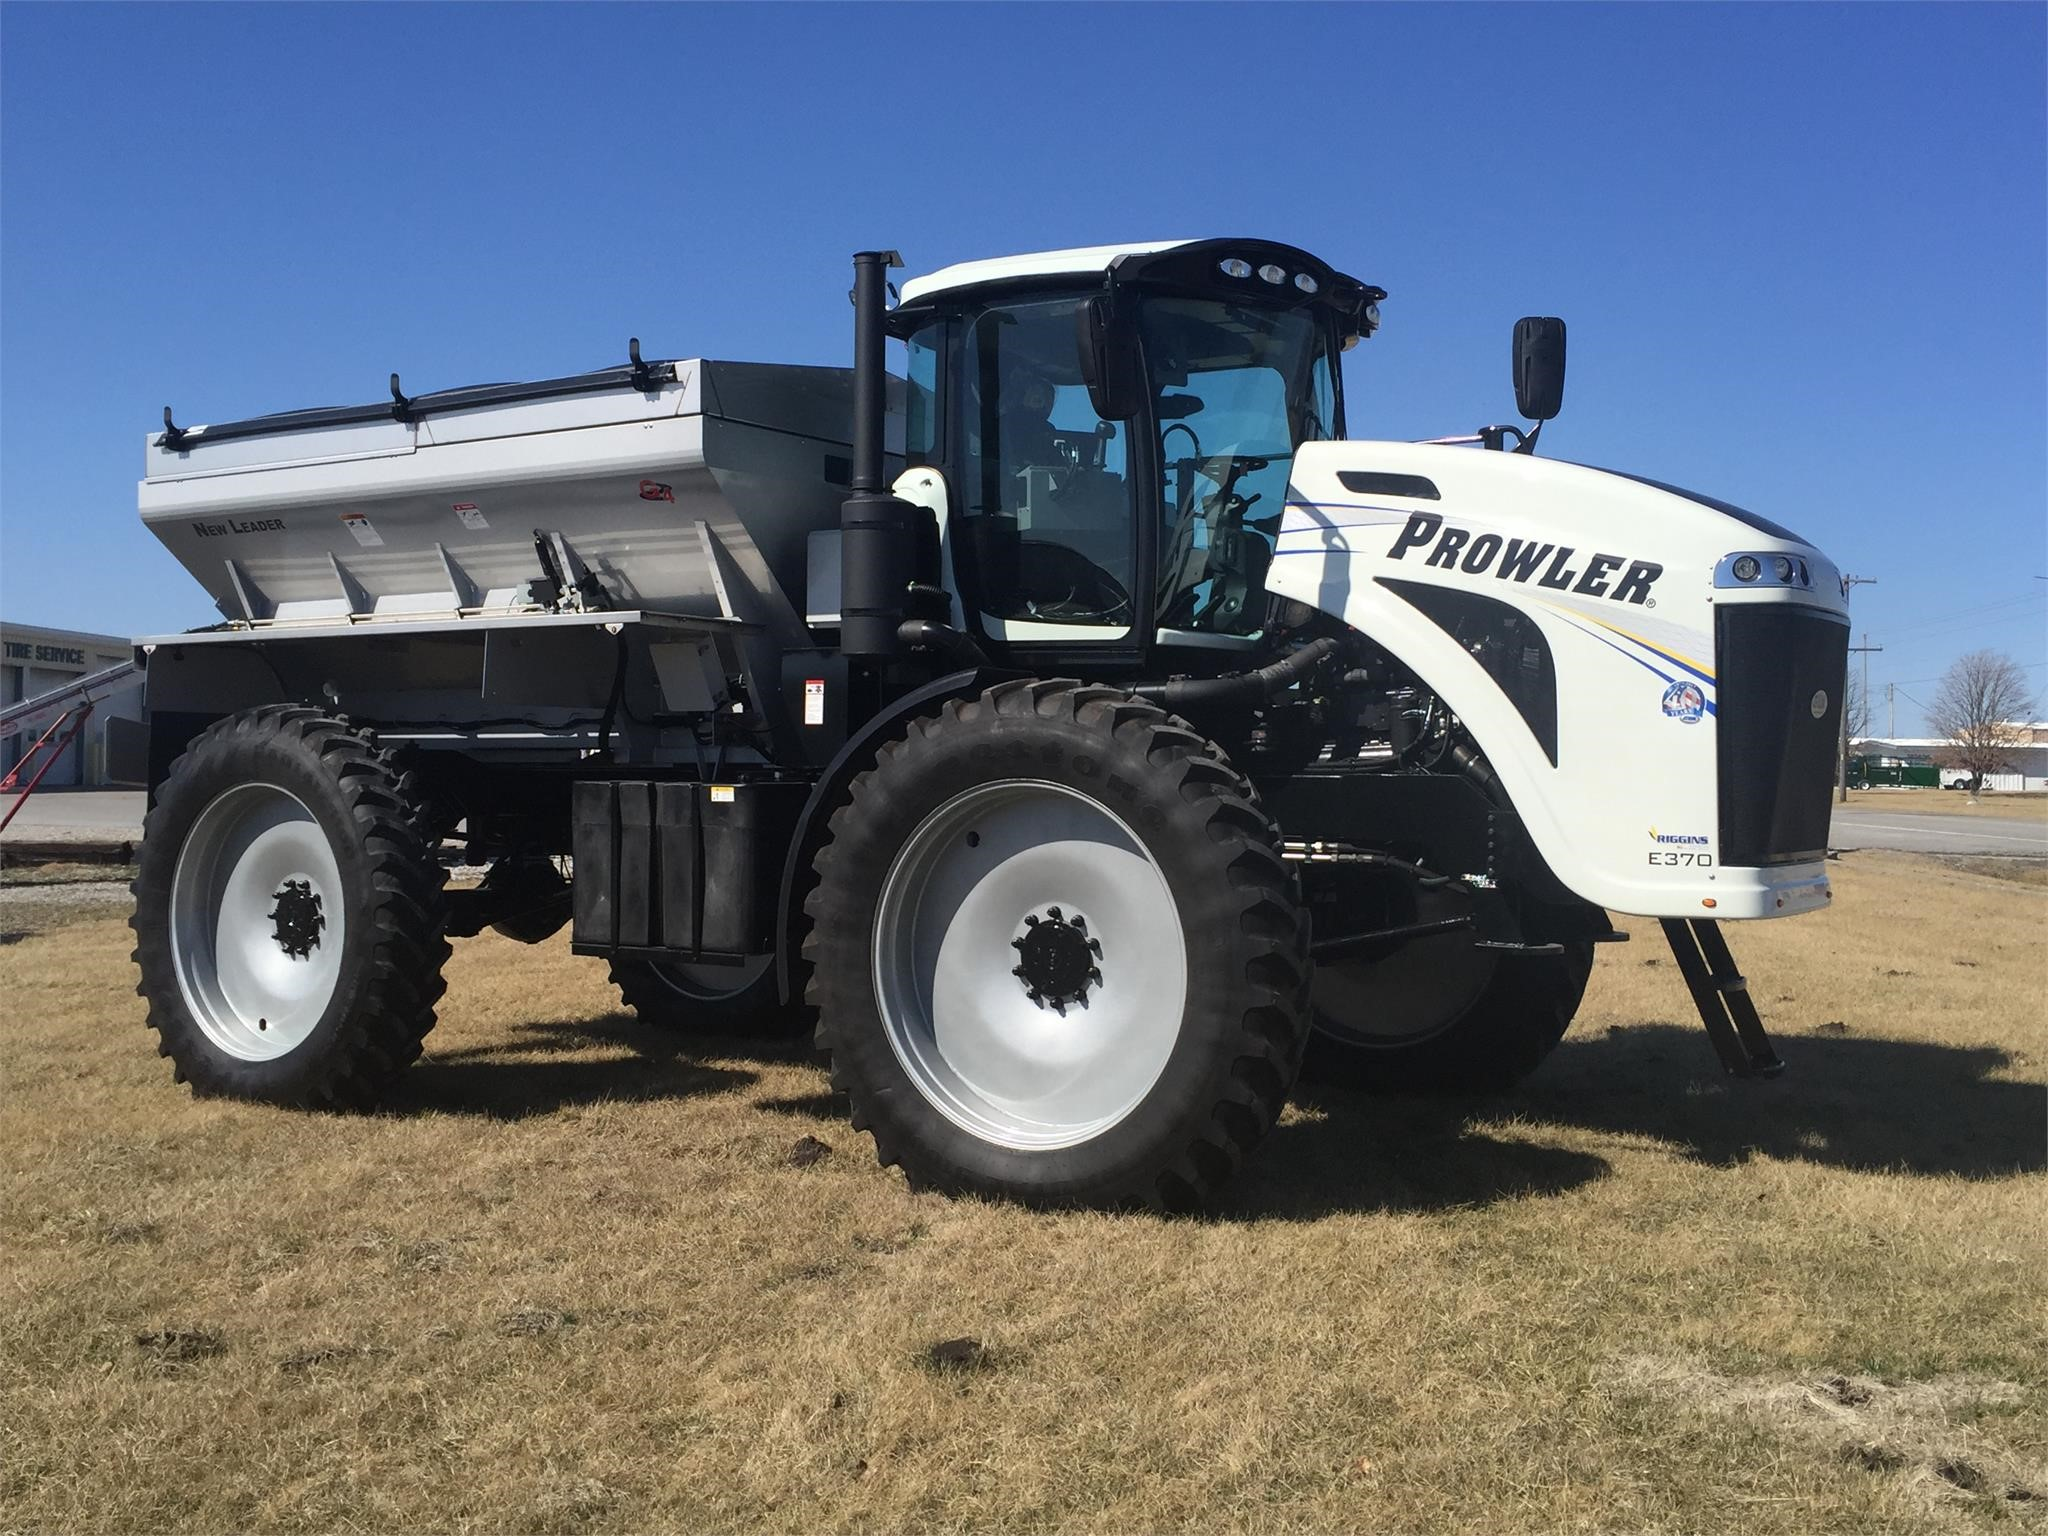 2017 GVM PROWLER E370 Self-Propelled Sprayer